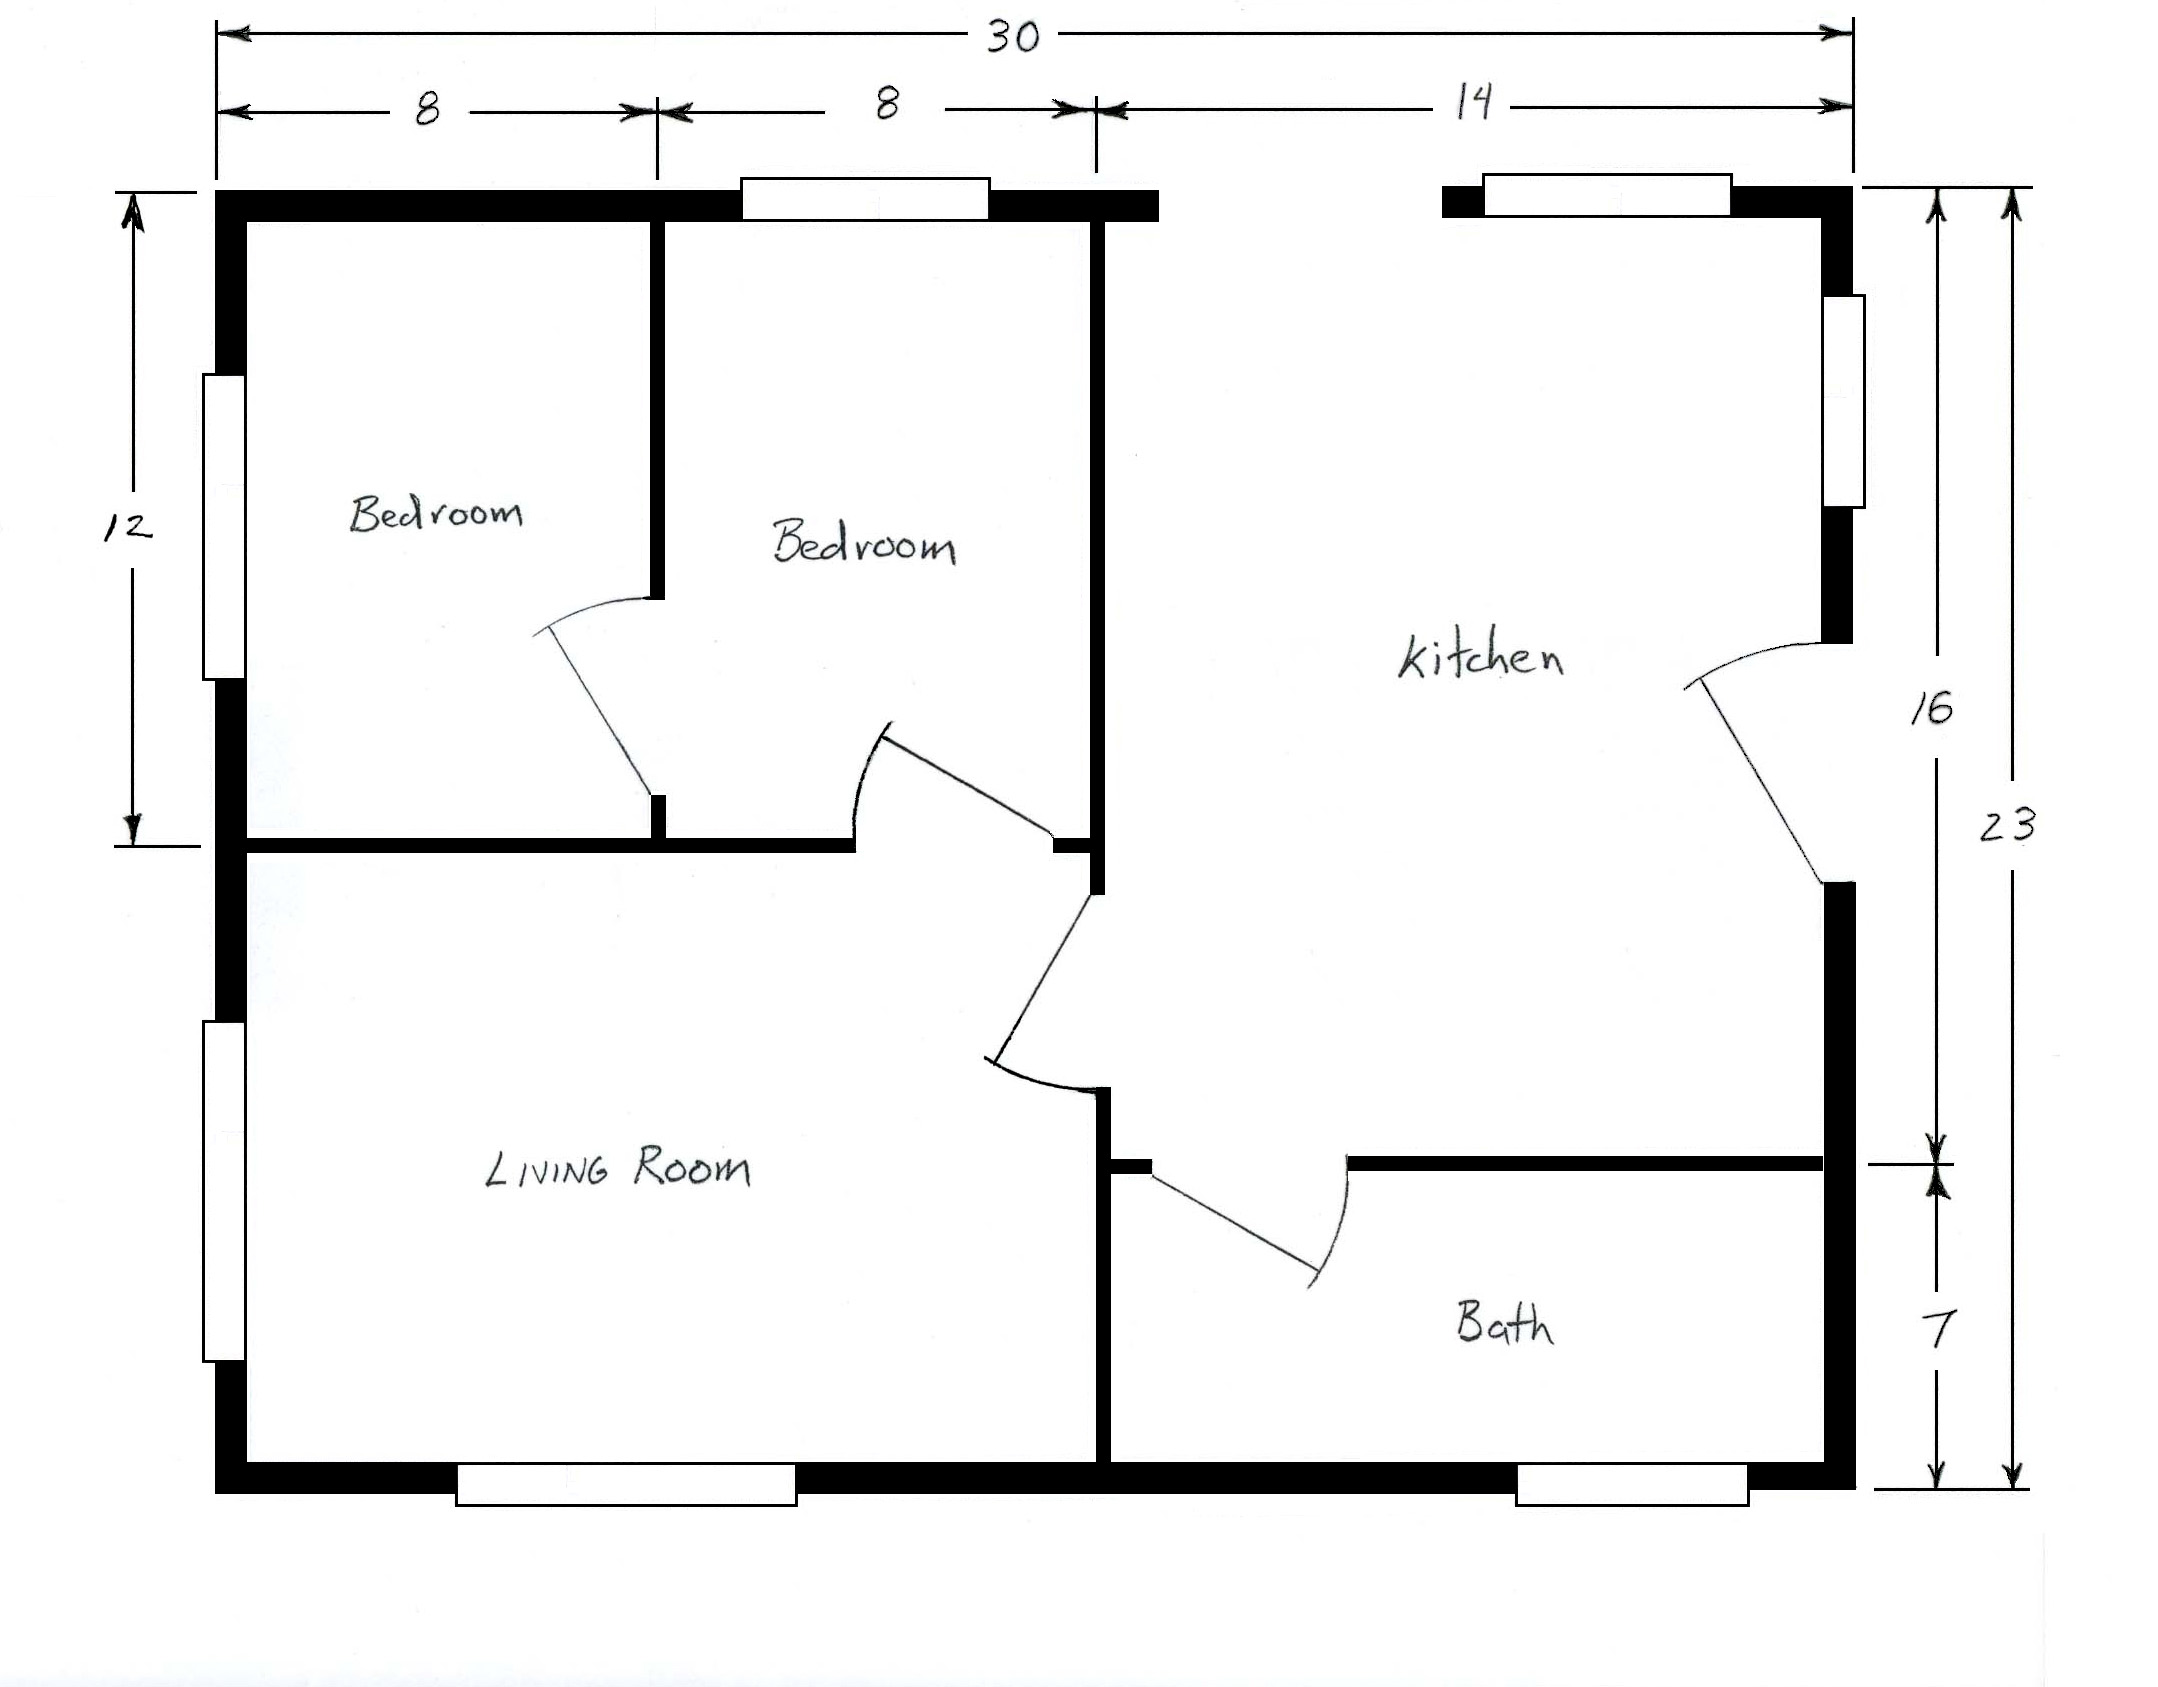 Free home plans sample house floor plans for Sample home floor plans